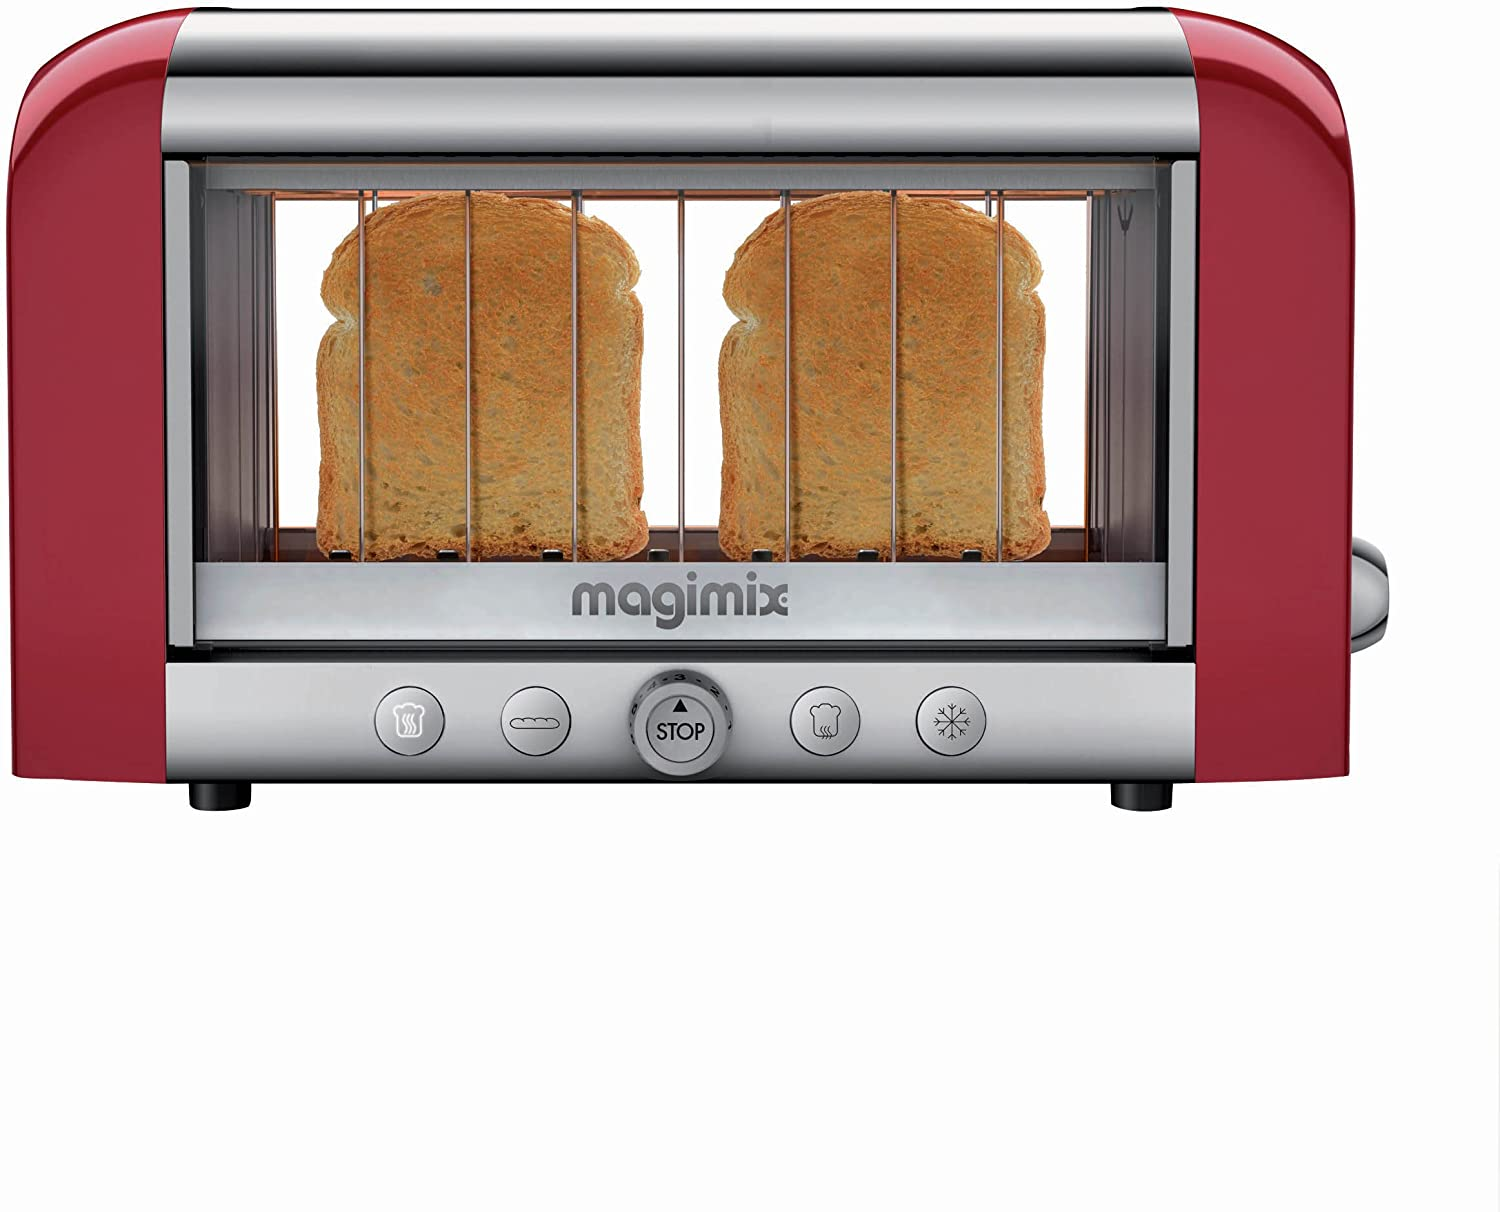 Magimix Toaster Vision Red 1450-watt Glass Toaster